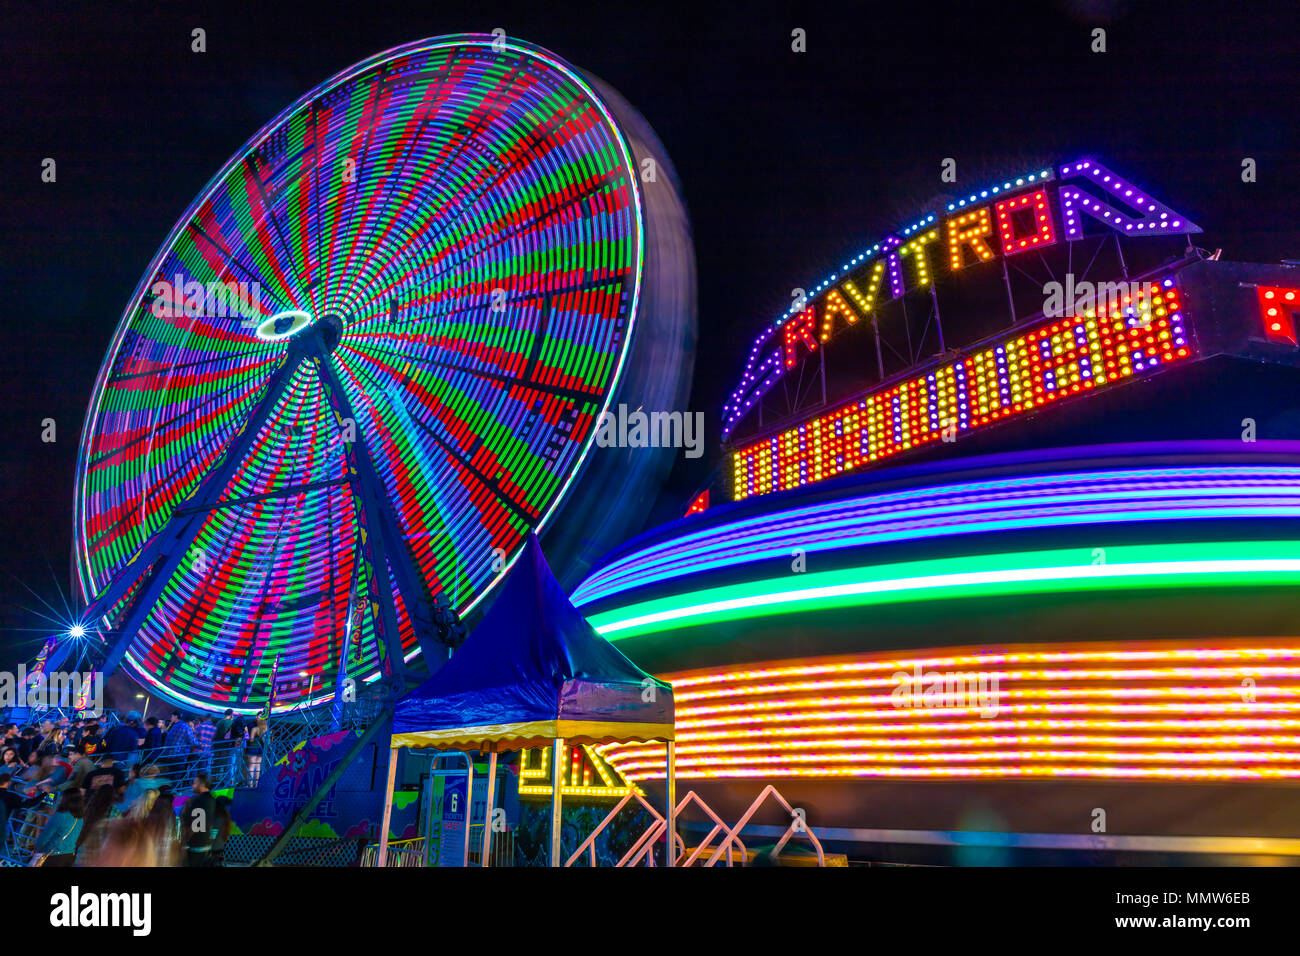 July 18 2017 Ventura California Illuminated Ferris Wheel With